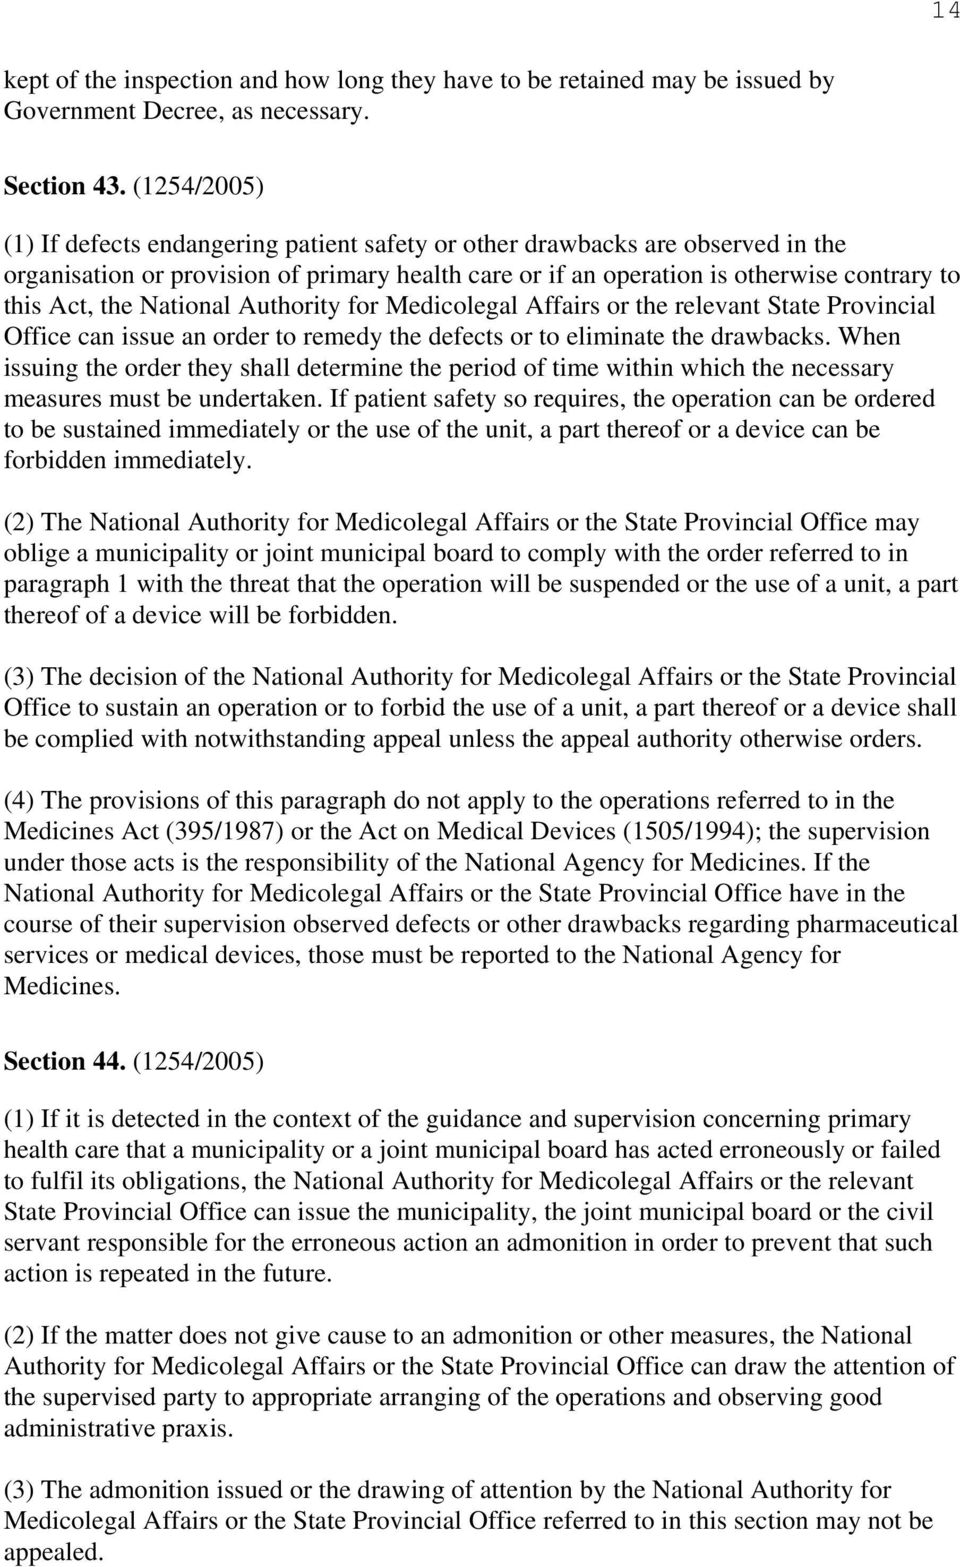 National Authority for Medicolegal Affairs or the relevant State Provincial Office can issue an order to remedy the defects or to eliminate the drawbacks.